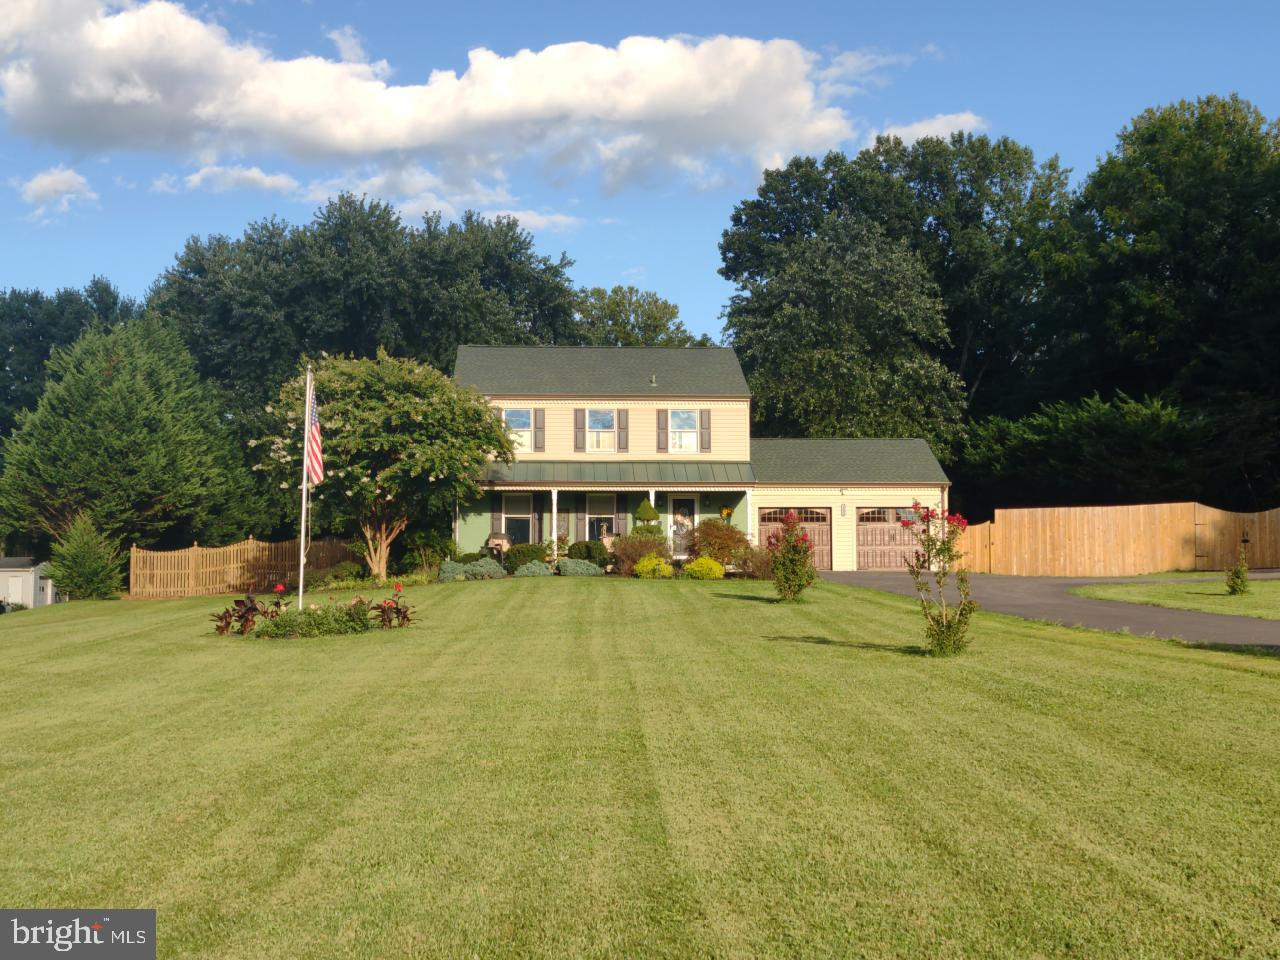 PEACEFUL LIVING in this 4 BR, 2.5 Bath Colonial on 1.46 acres. NEW Roof, NEW Gutters, NEW HVAC, NEW